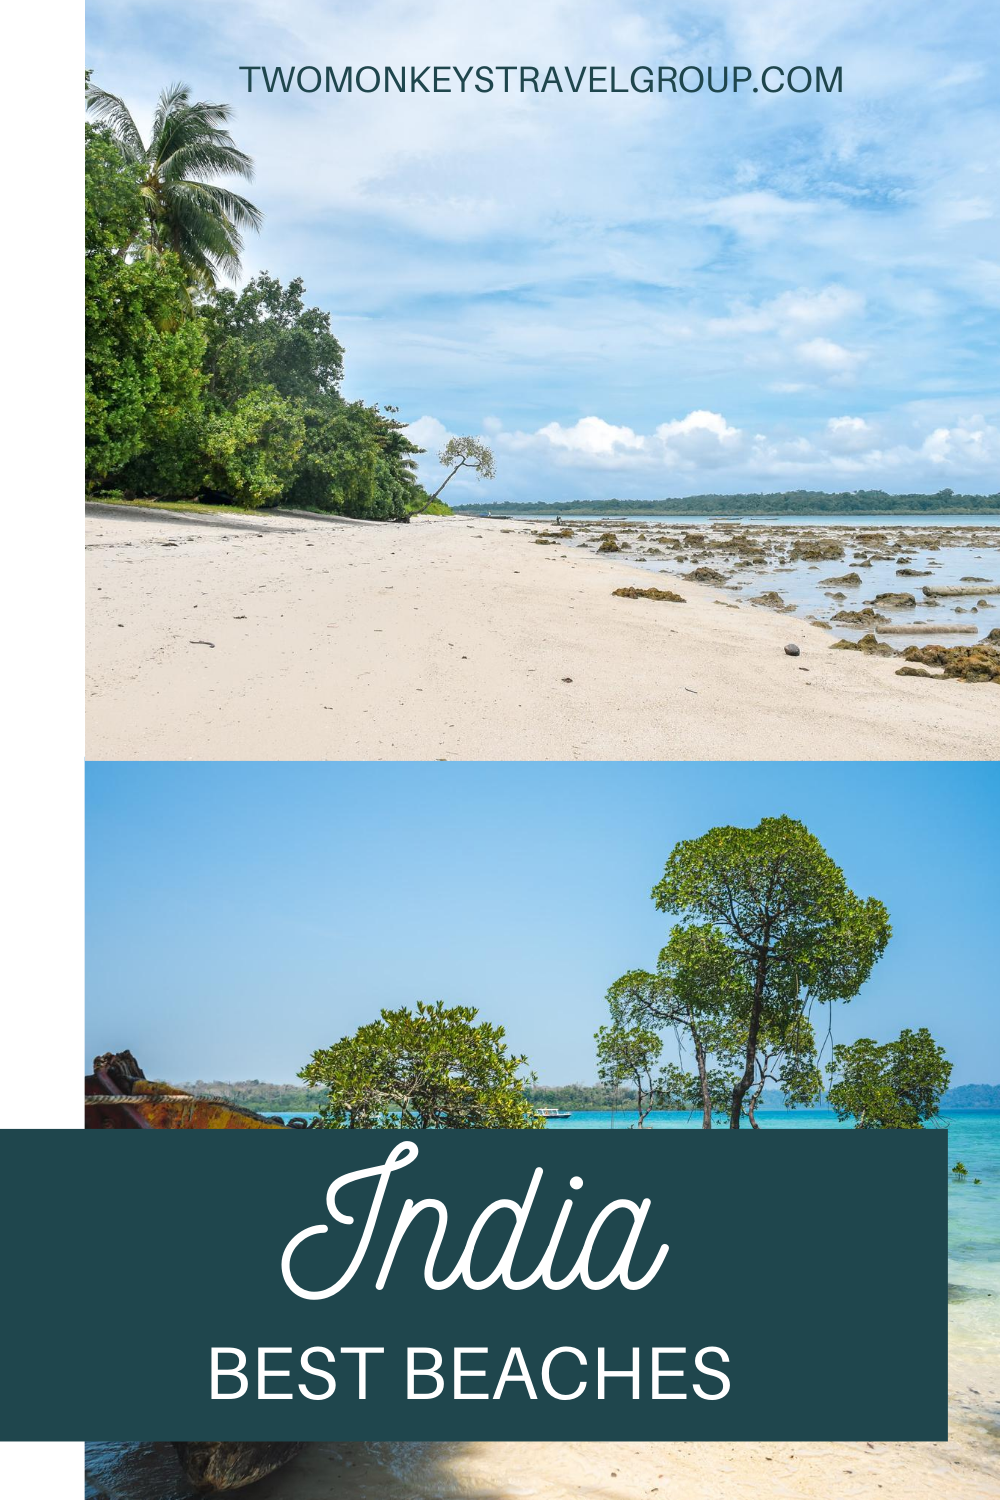 5 Best Beaches in India that You Need to Visit [With Tips on What To Do]